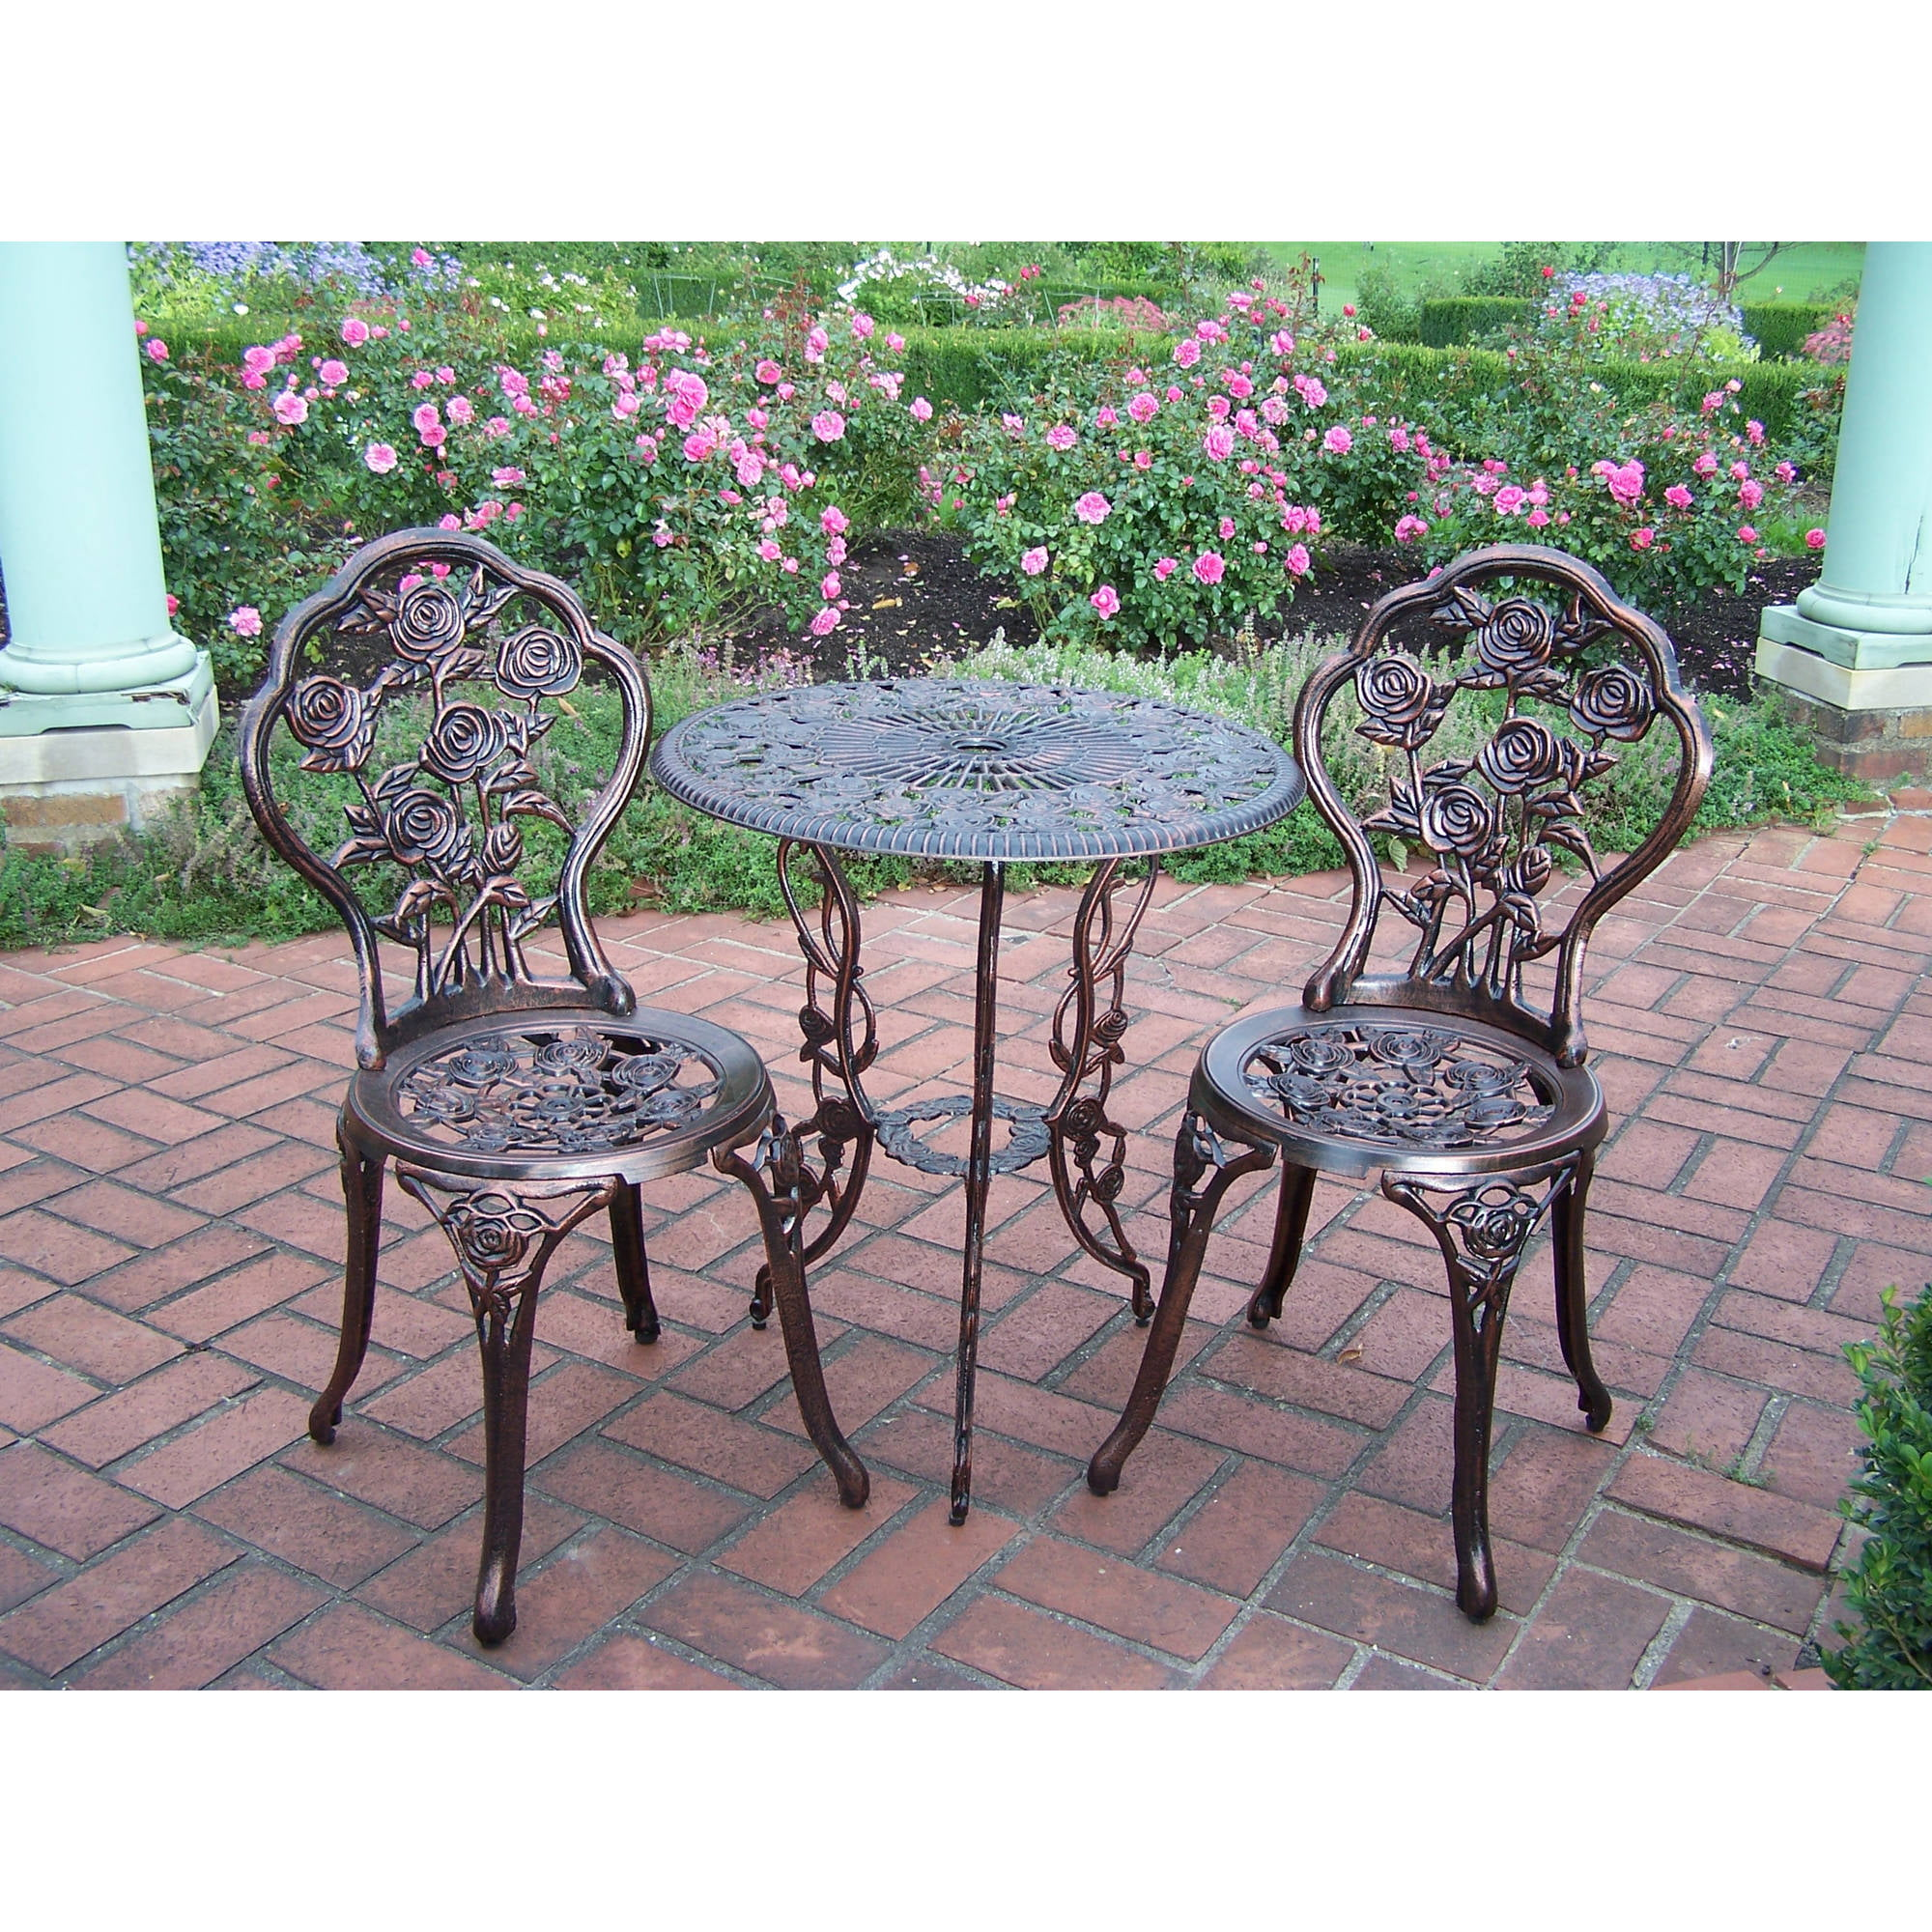 outdoor chairs club monza antonia set patio dining table